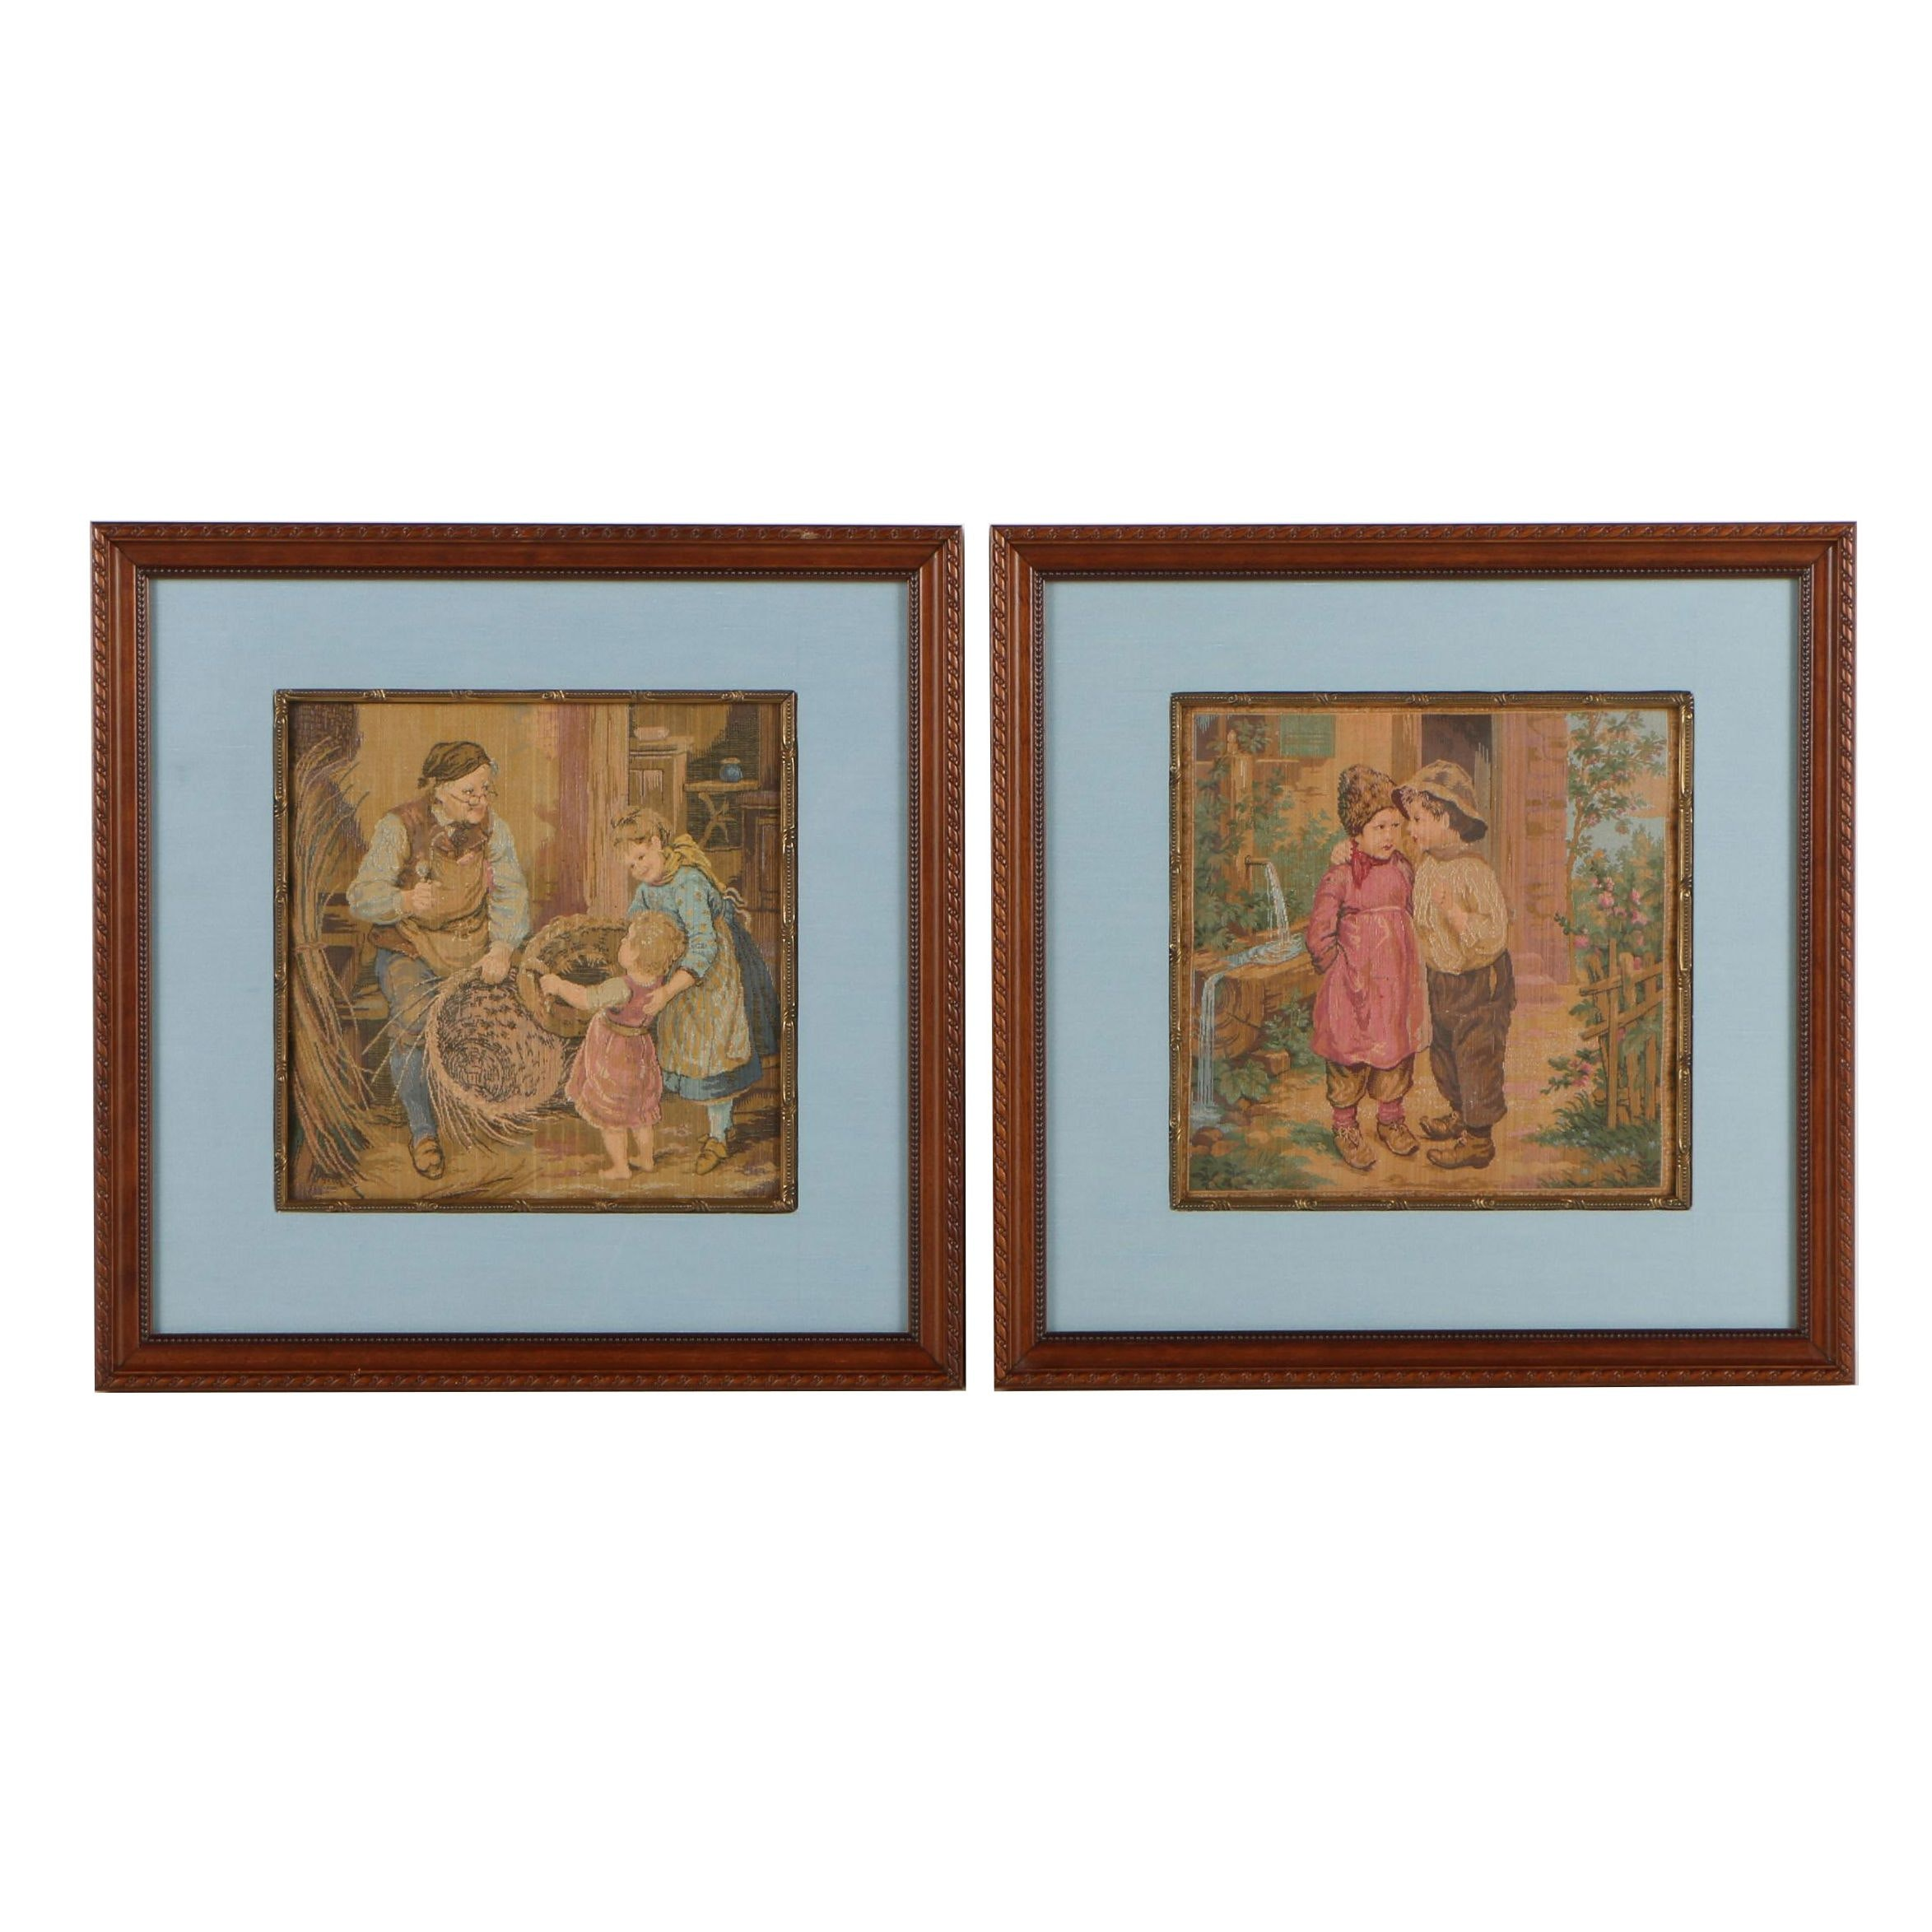 Framed Woven Pictorial Tapestries